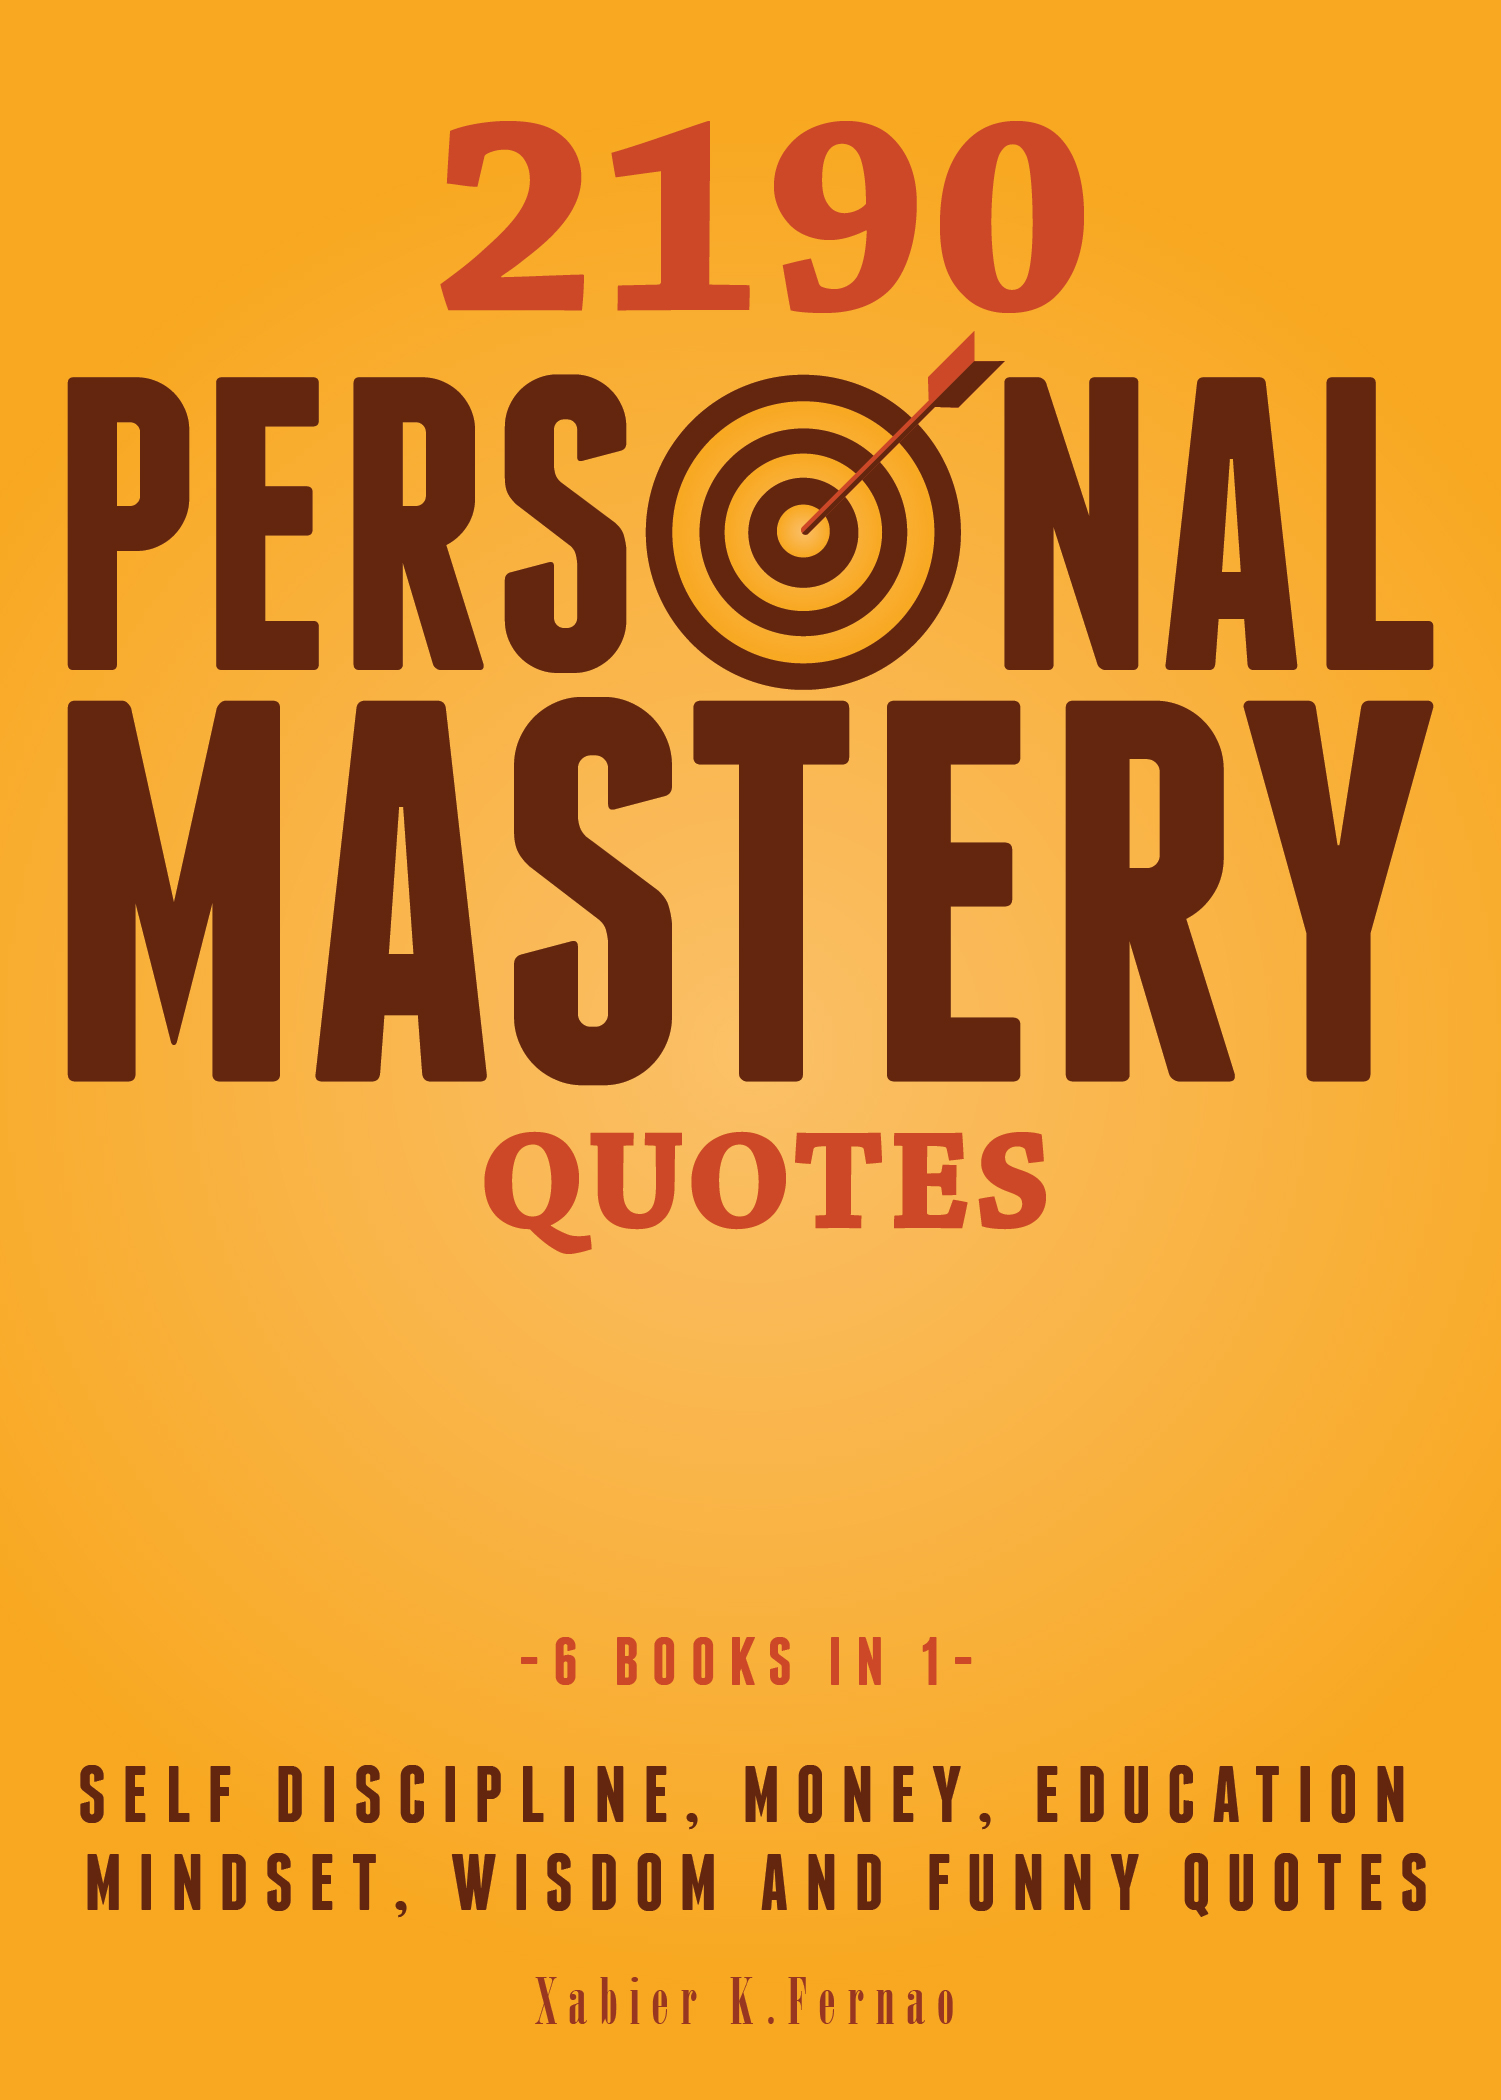 2190 personal mastery quotes